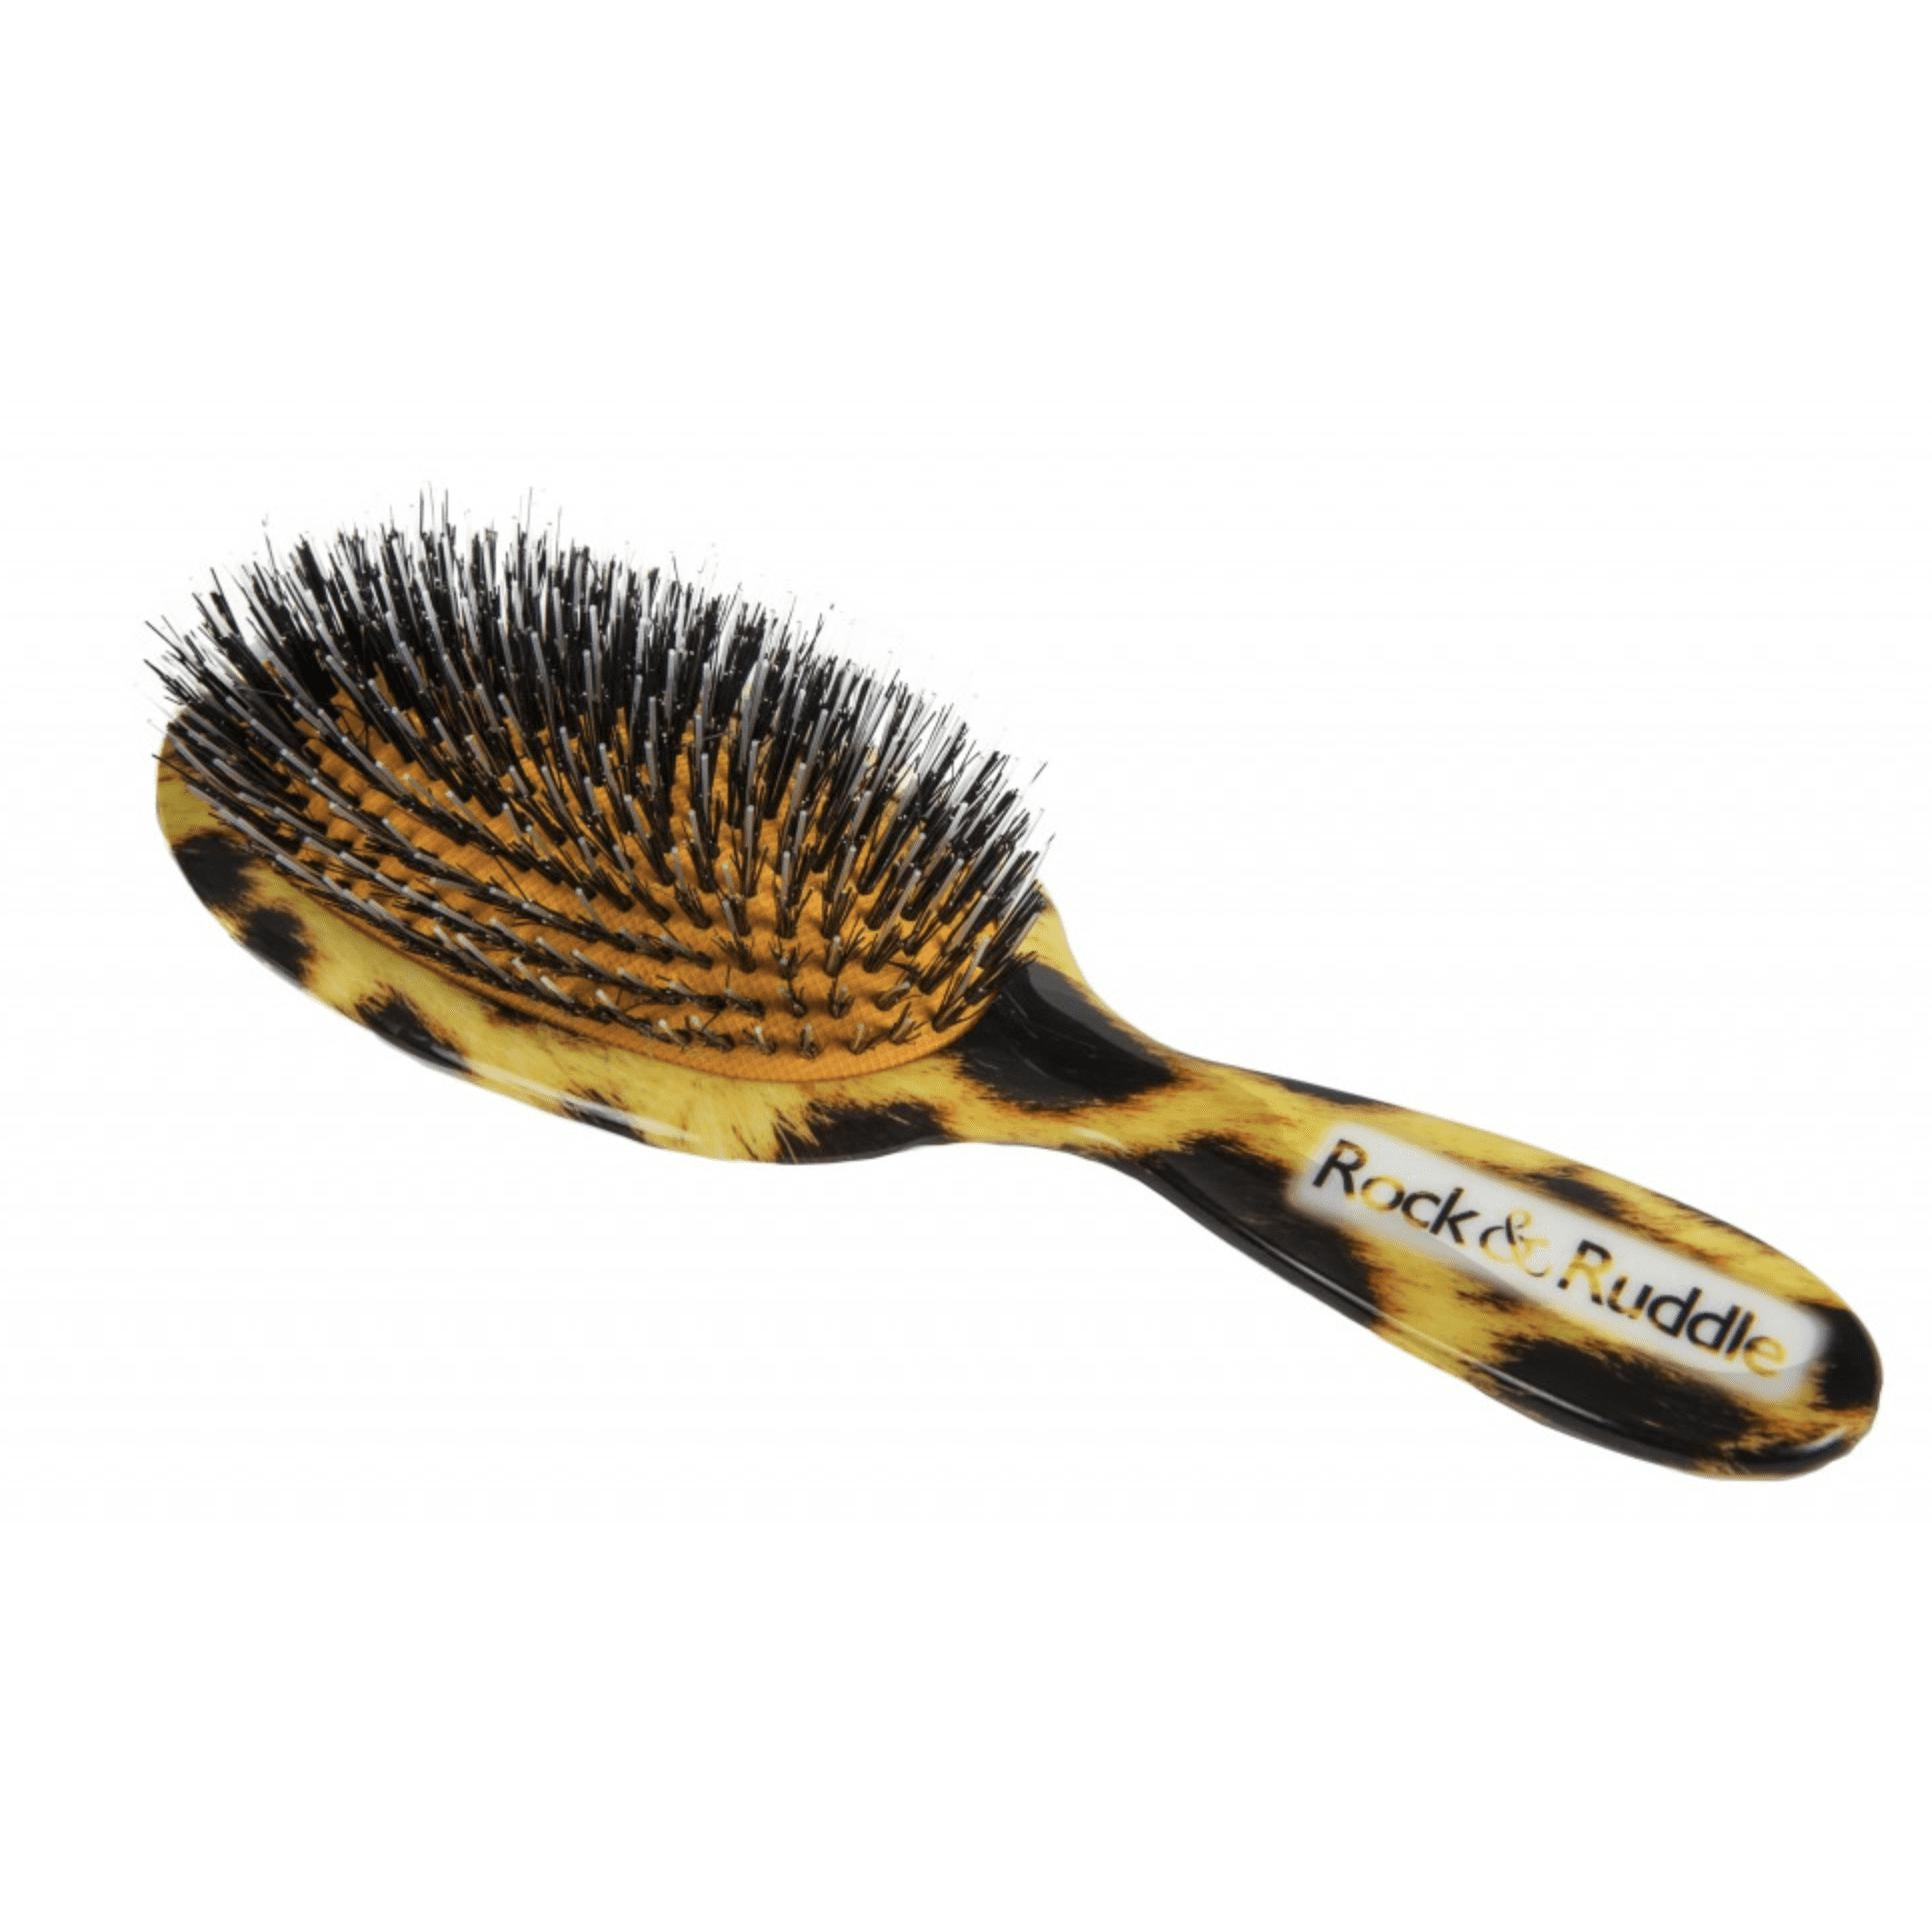 Natural Bristle Hairbrush Leopard Print-Hairbrushes and combs-Rock & Ruddle-Large-Tegen Accessories